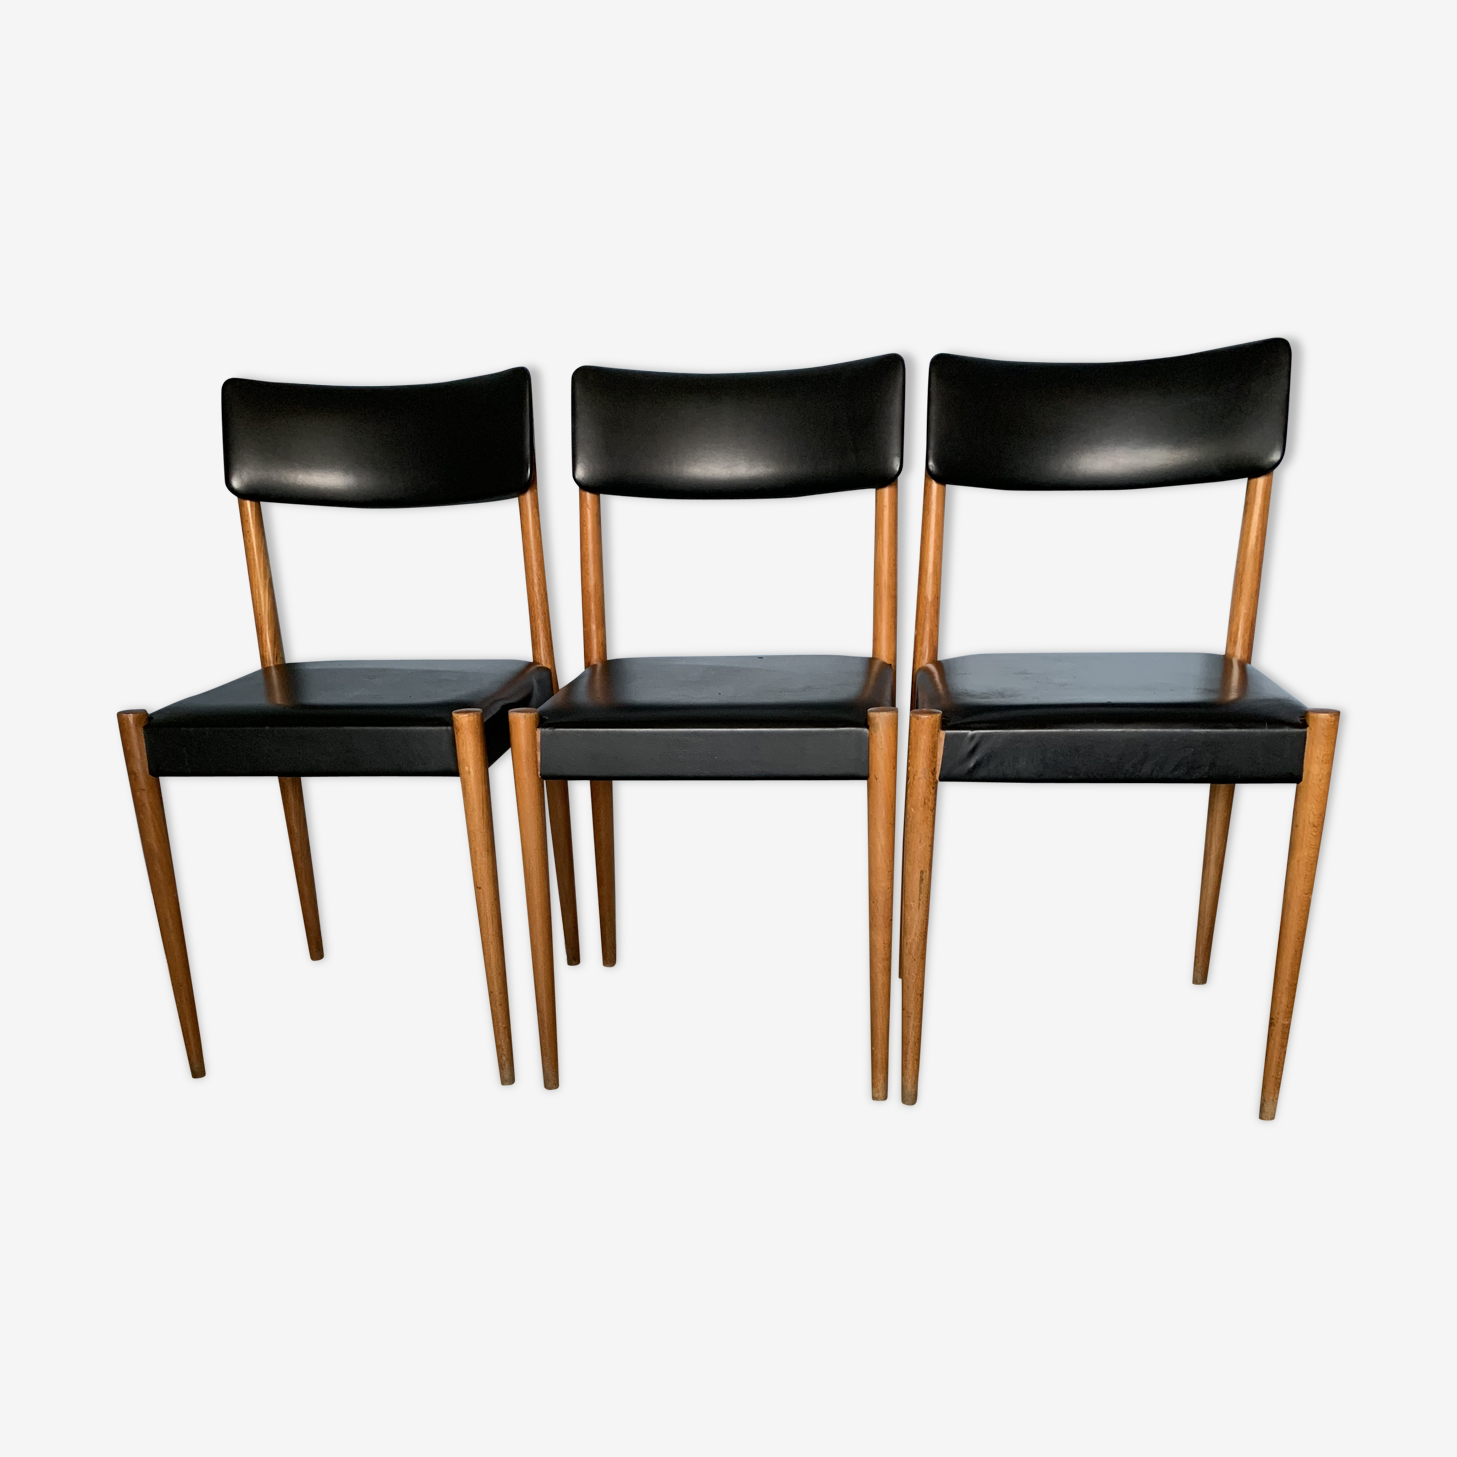 Set of 3 chairs 70s